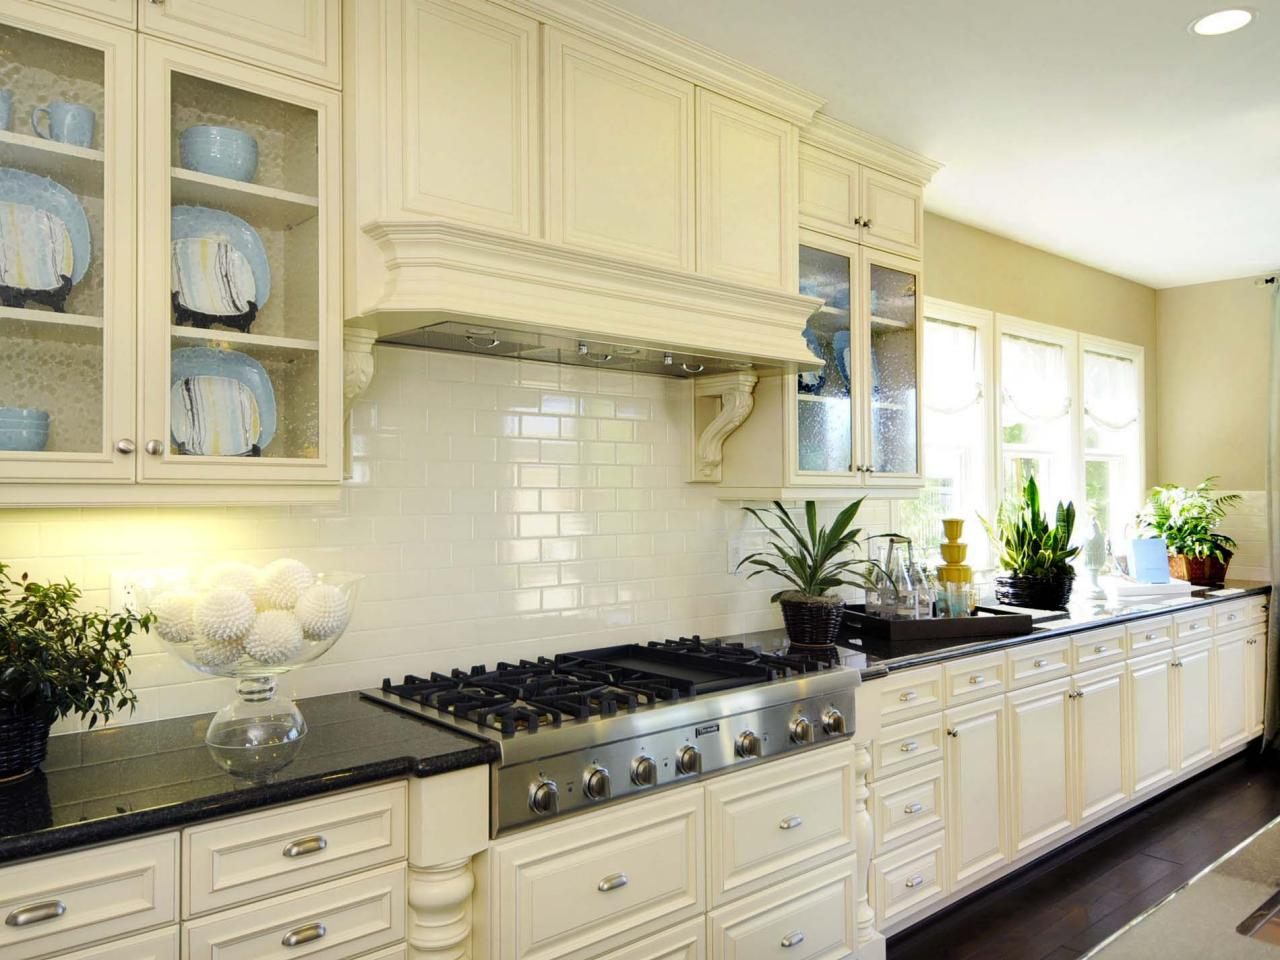 Picking a kitchen backsplash hgtv picking a kitchen backsplash dailygadgetfo Choice Image